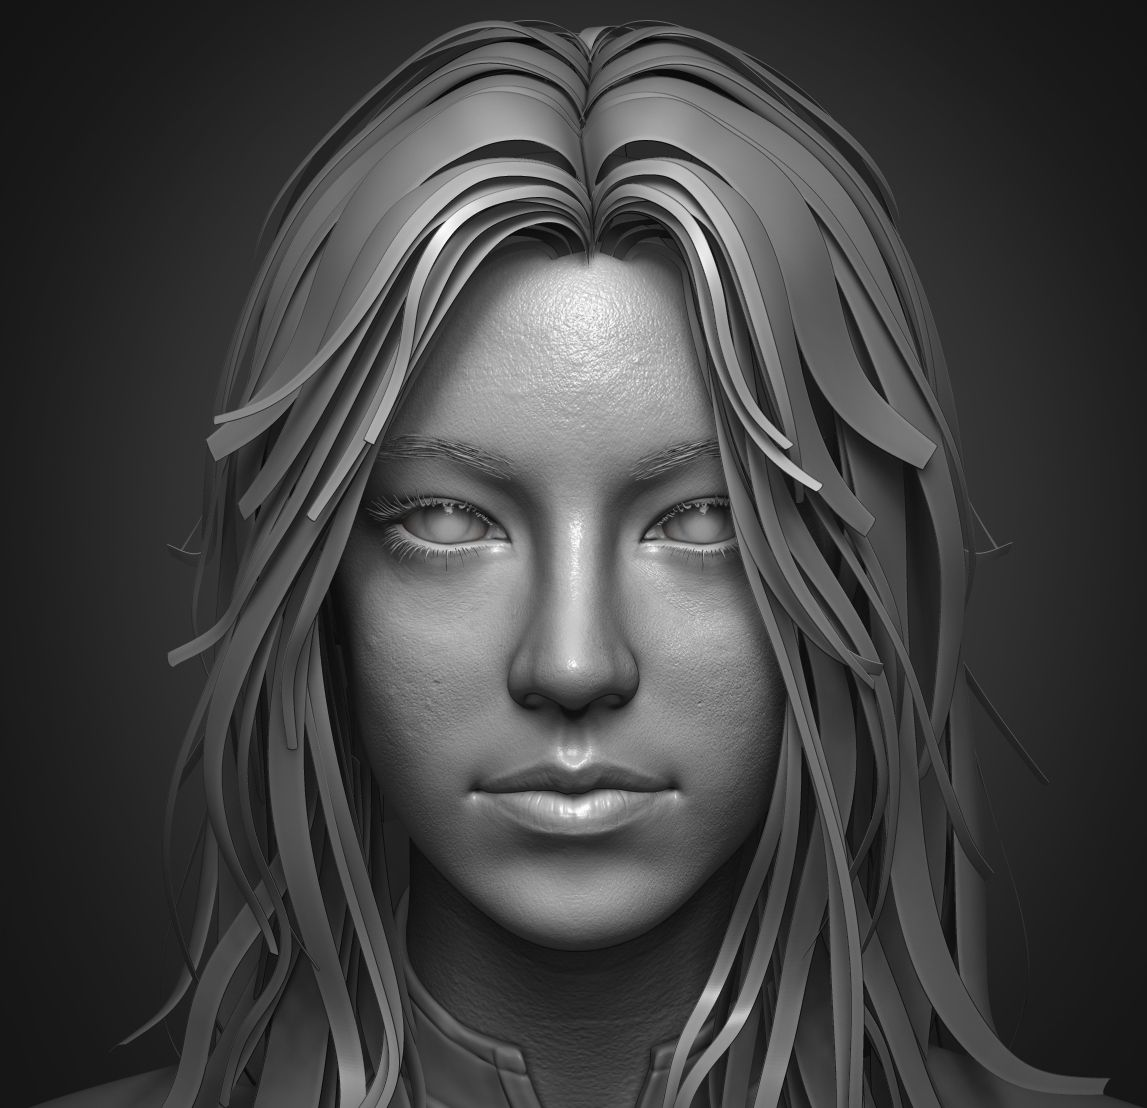 Wet Eyes Material :) | ZBrush Techniques in 2019 | Game of